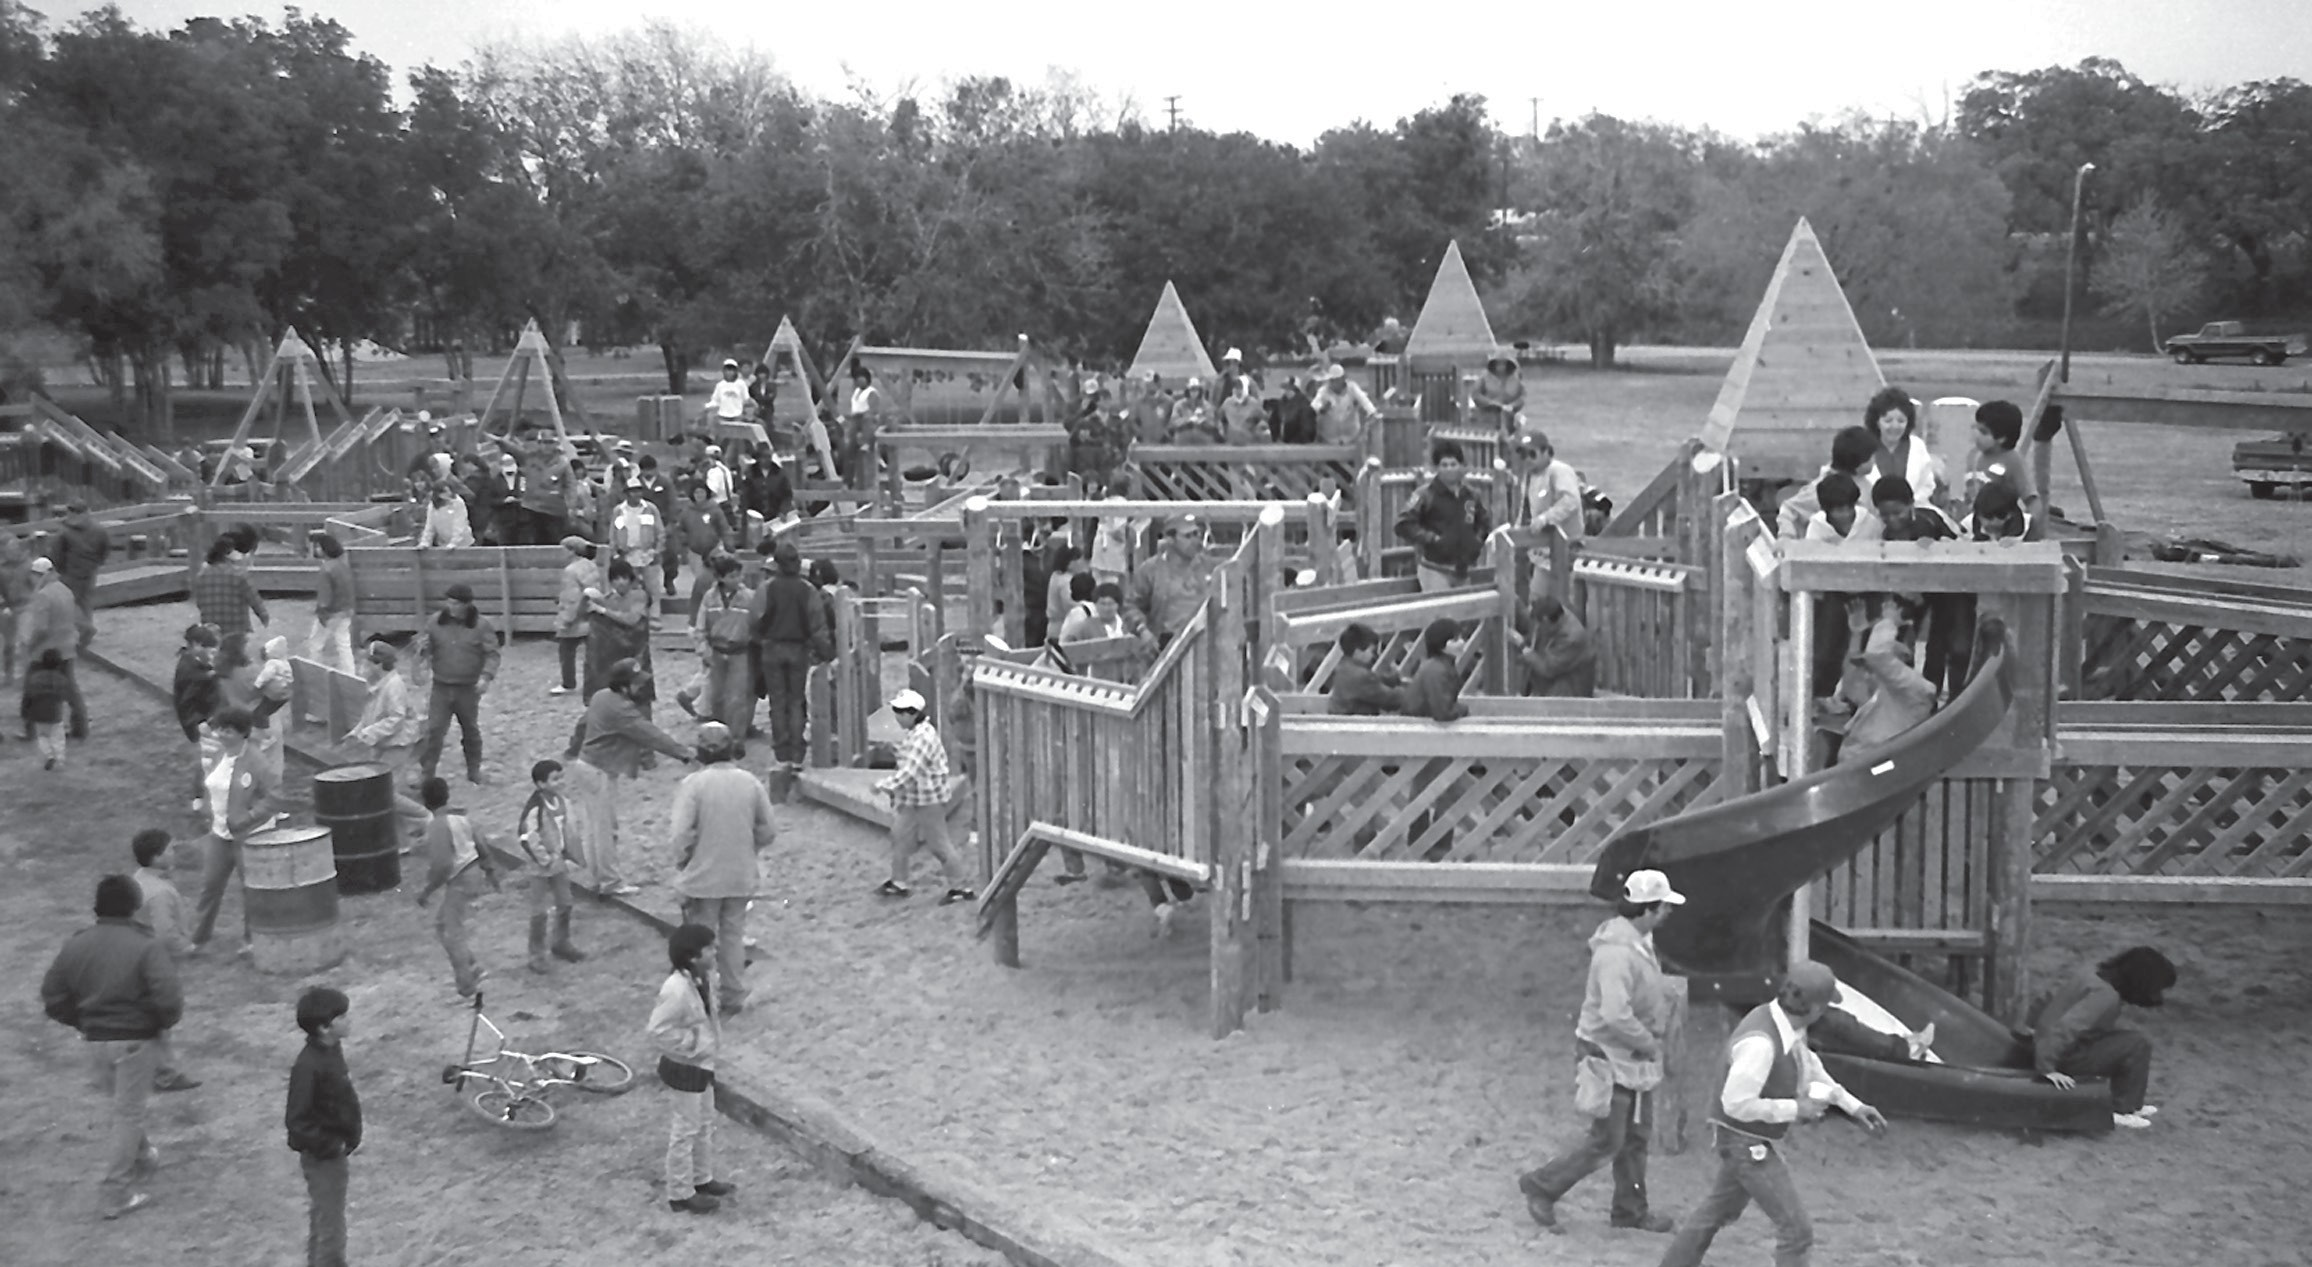 The completed playground in 1987.